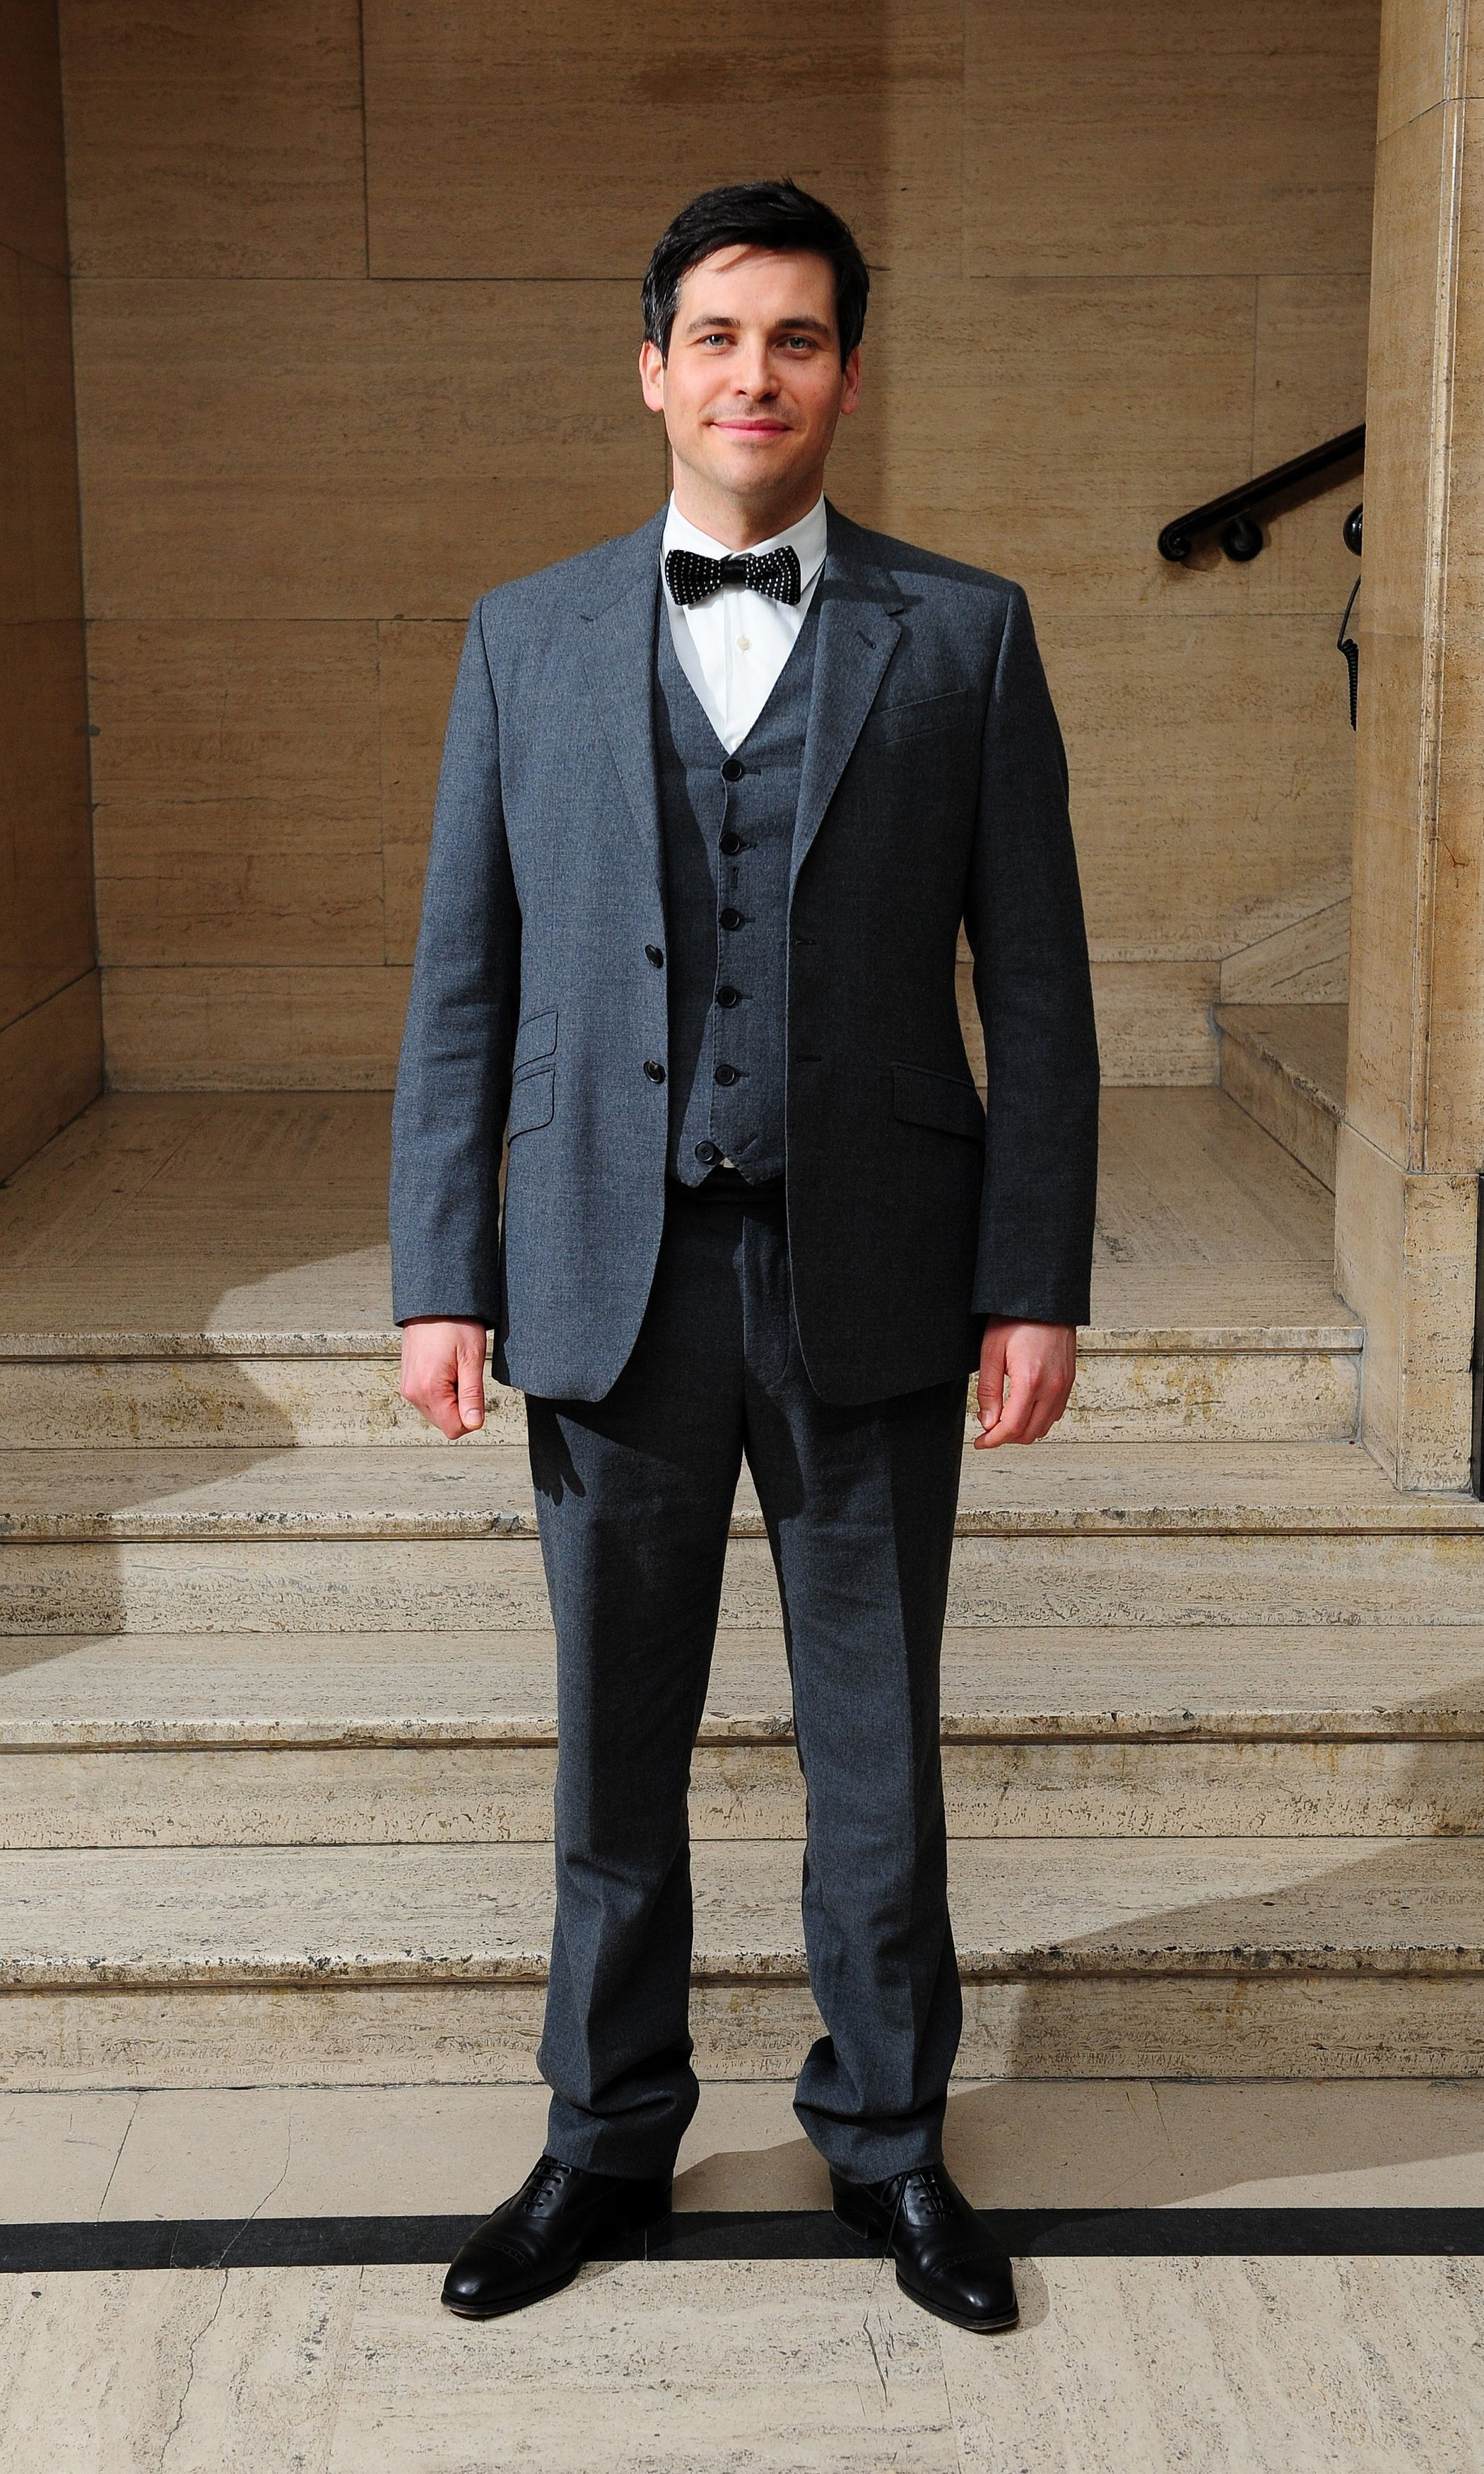 'Downton Abbey' Star Rob James-Collier Receives Backlash After Gay Typecasting